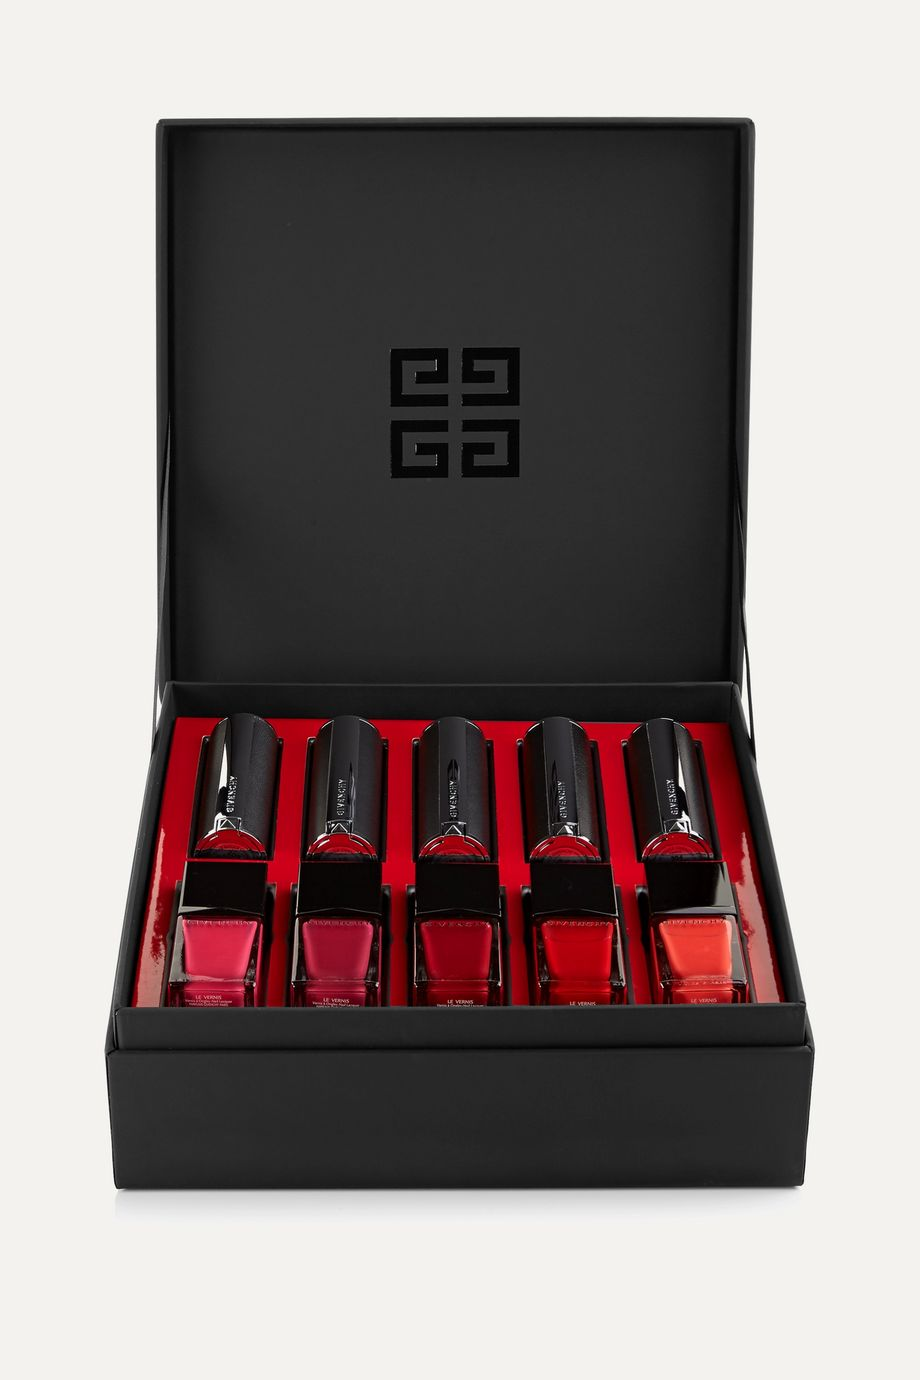 Givenchy Beauty Prestige Color Box